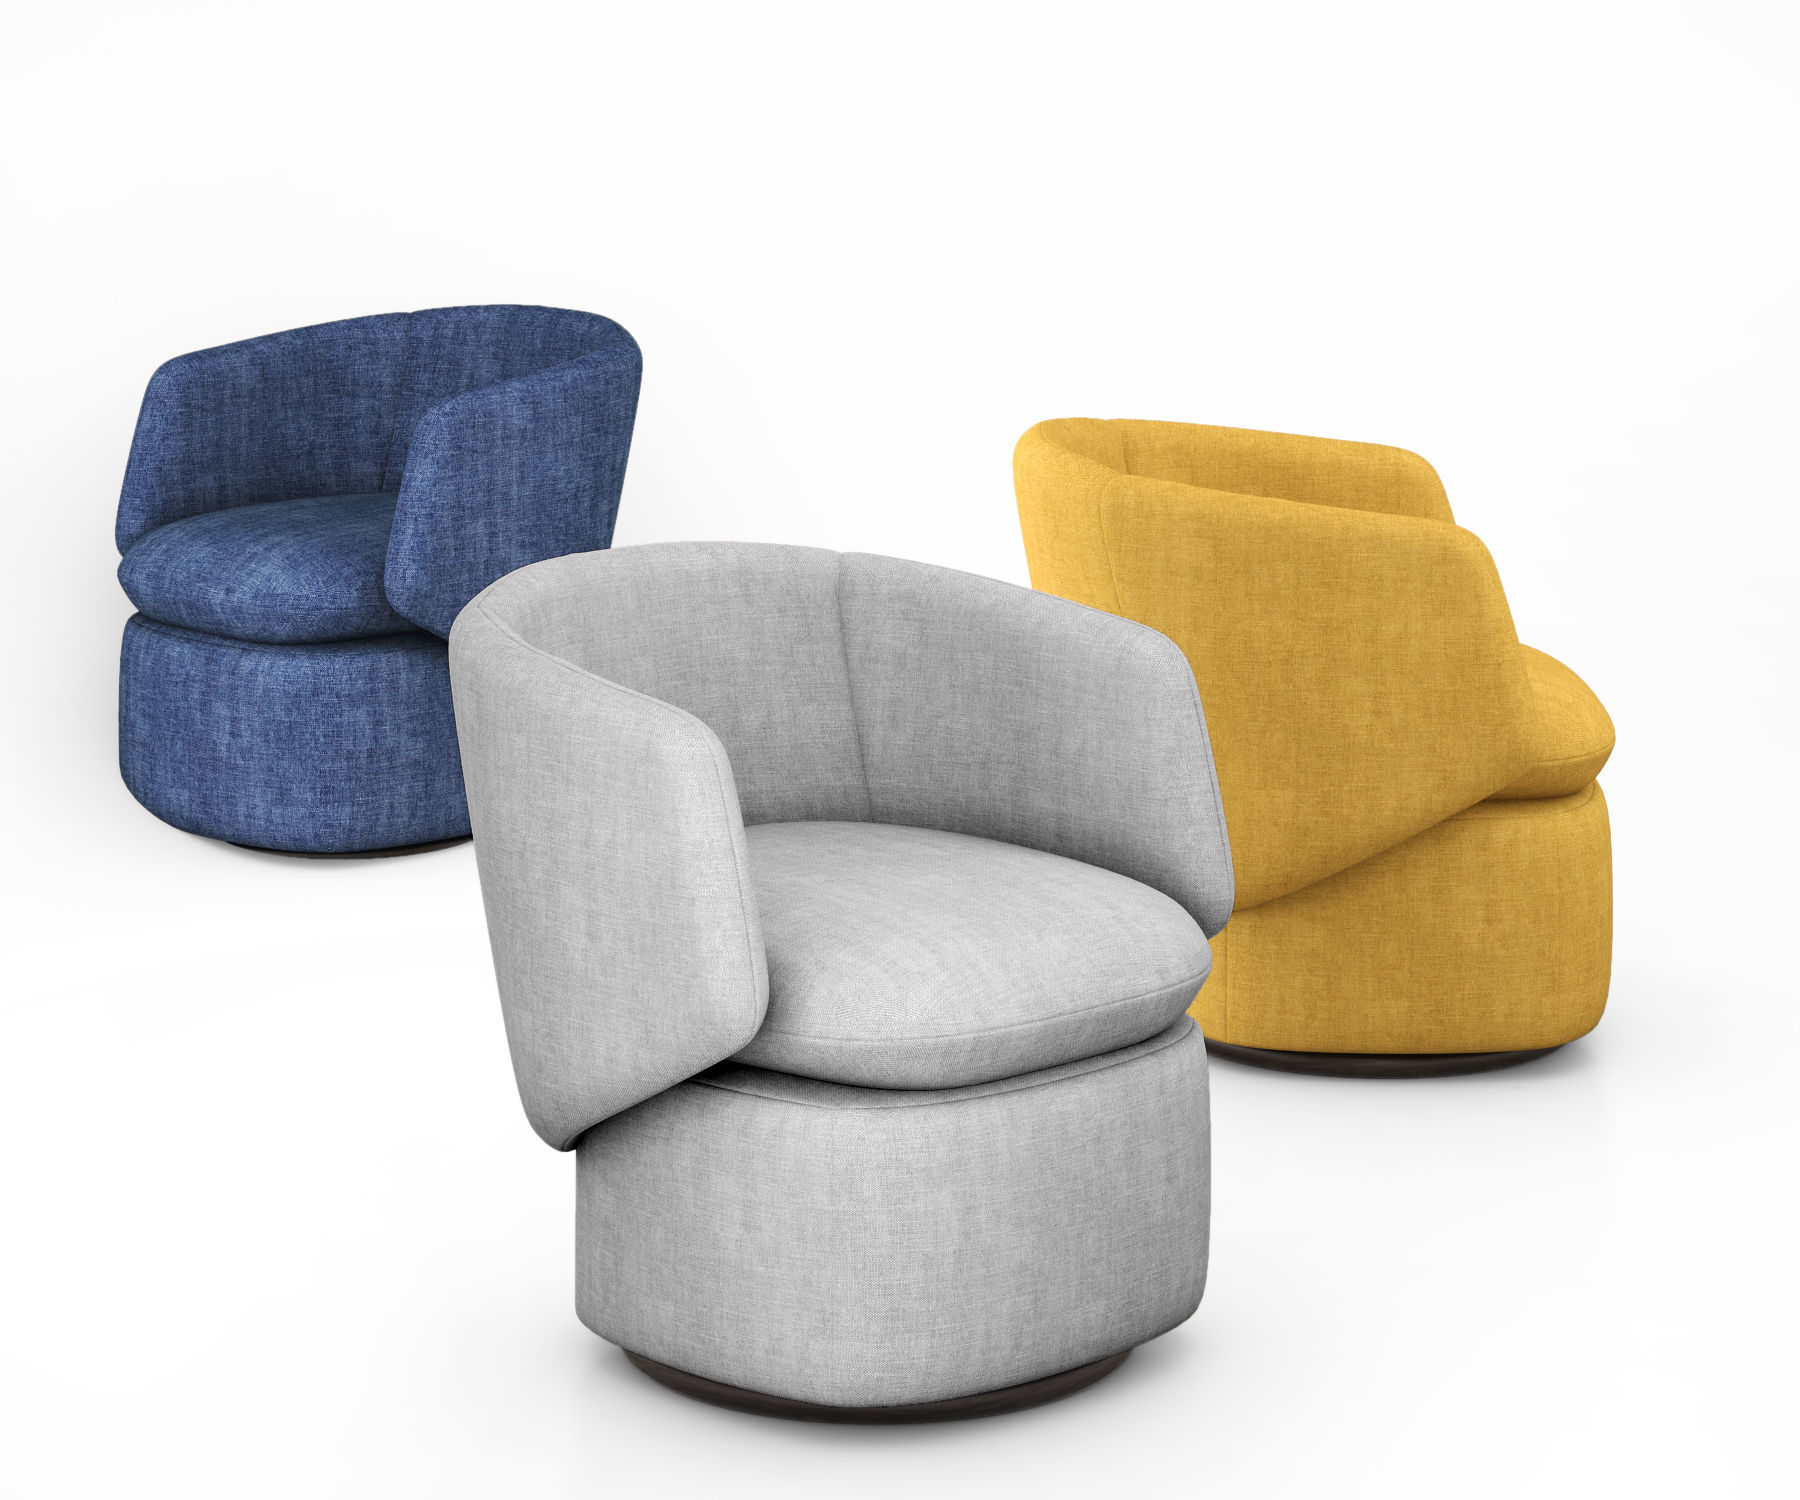 Crescent Swivel Chair by West elm